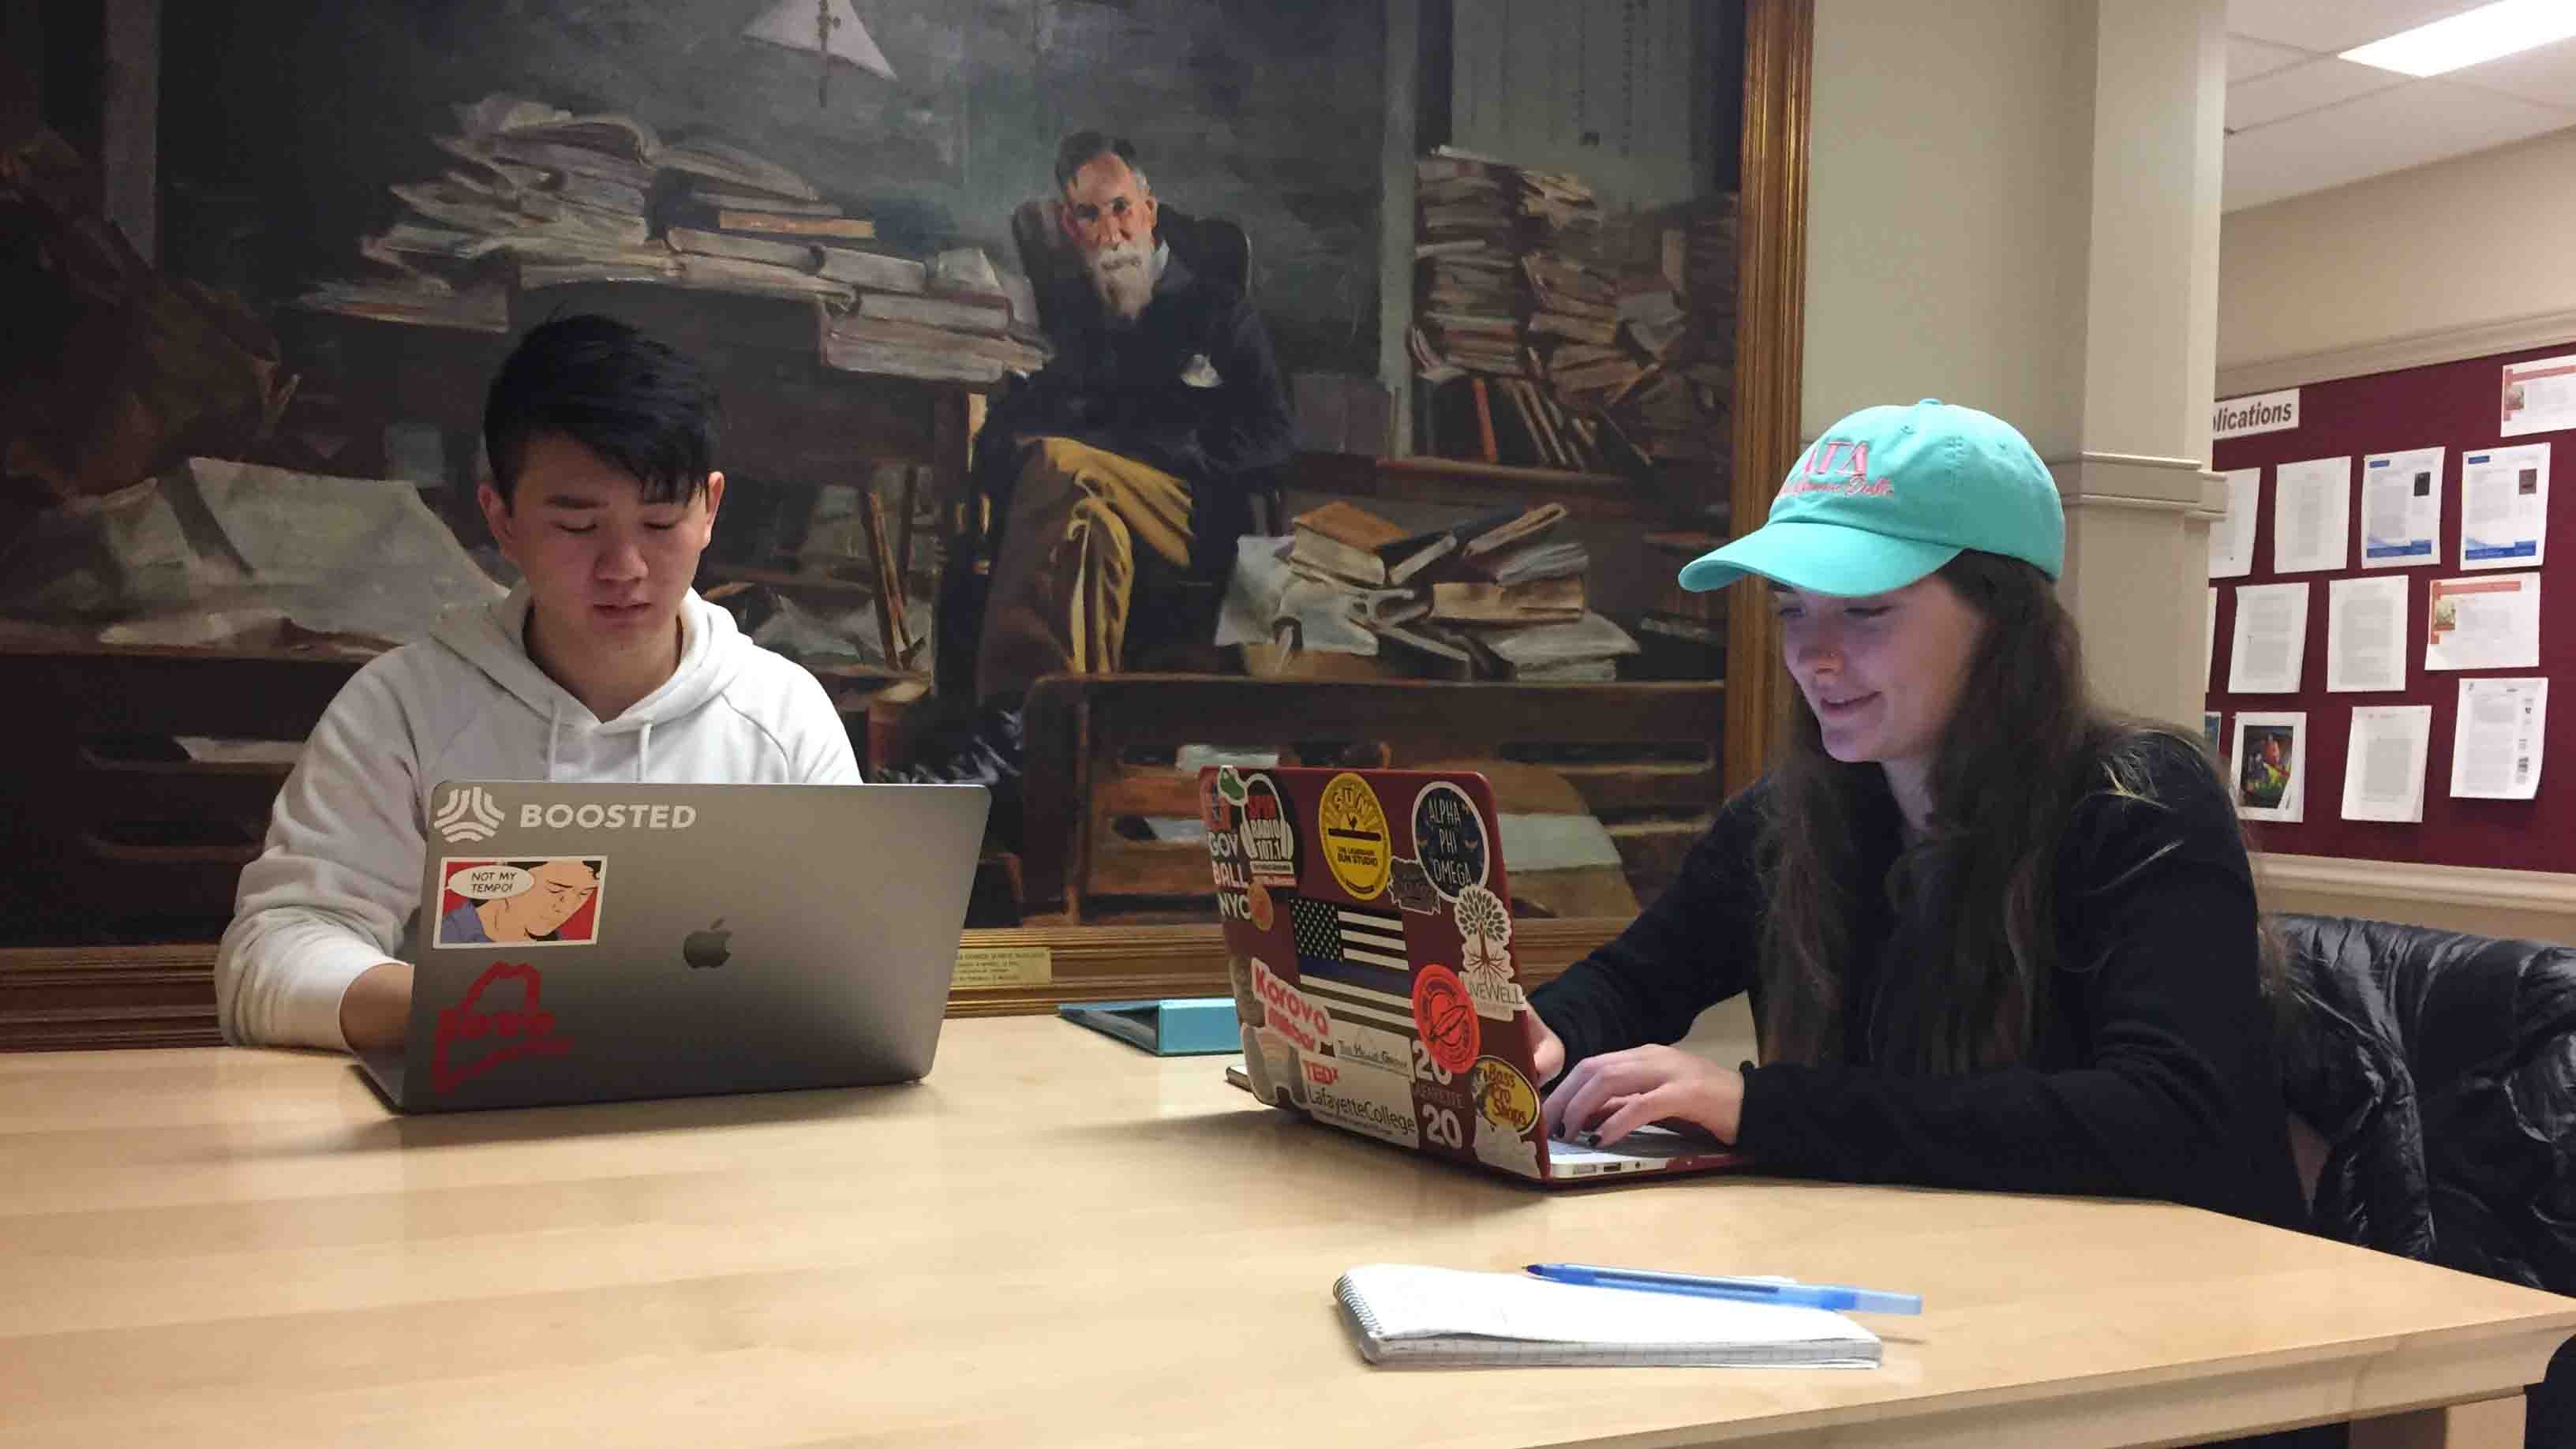 Film and media studies majors Hannah Koch '20 and Randy Zhou '20 plan in Pardee Hall by a portrait painting of Francis A. March.